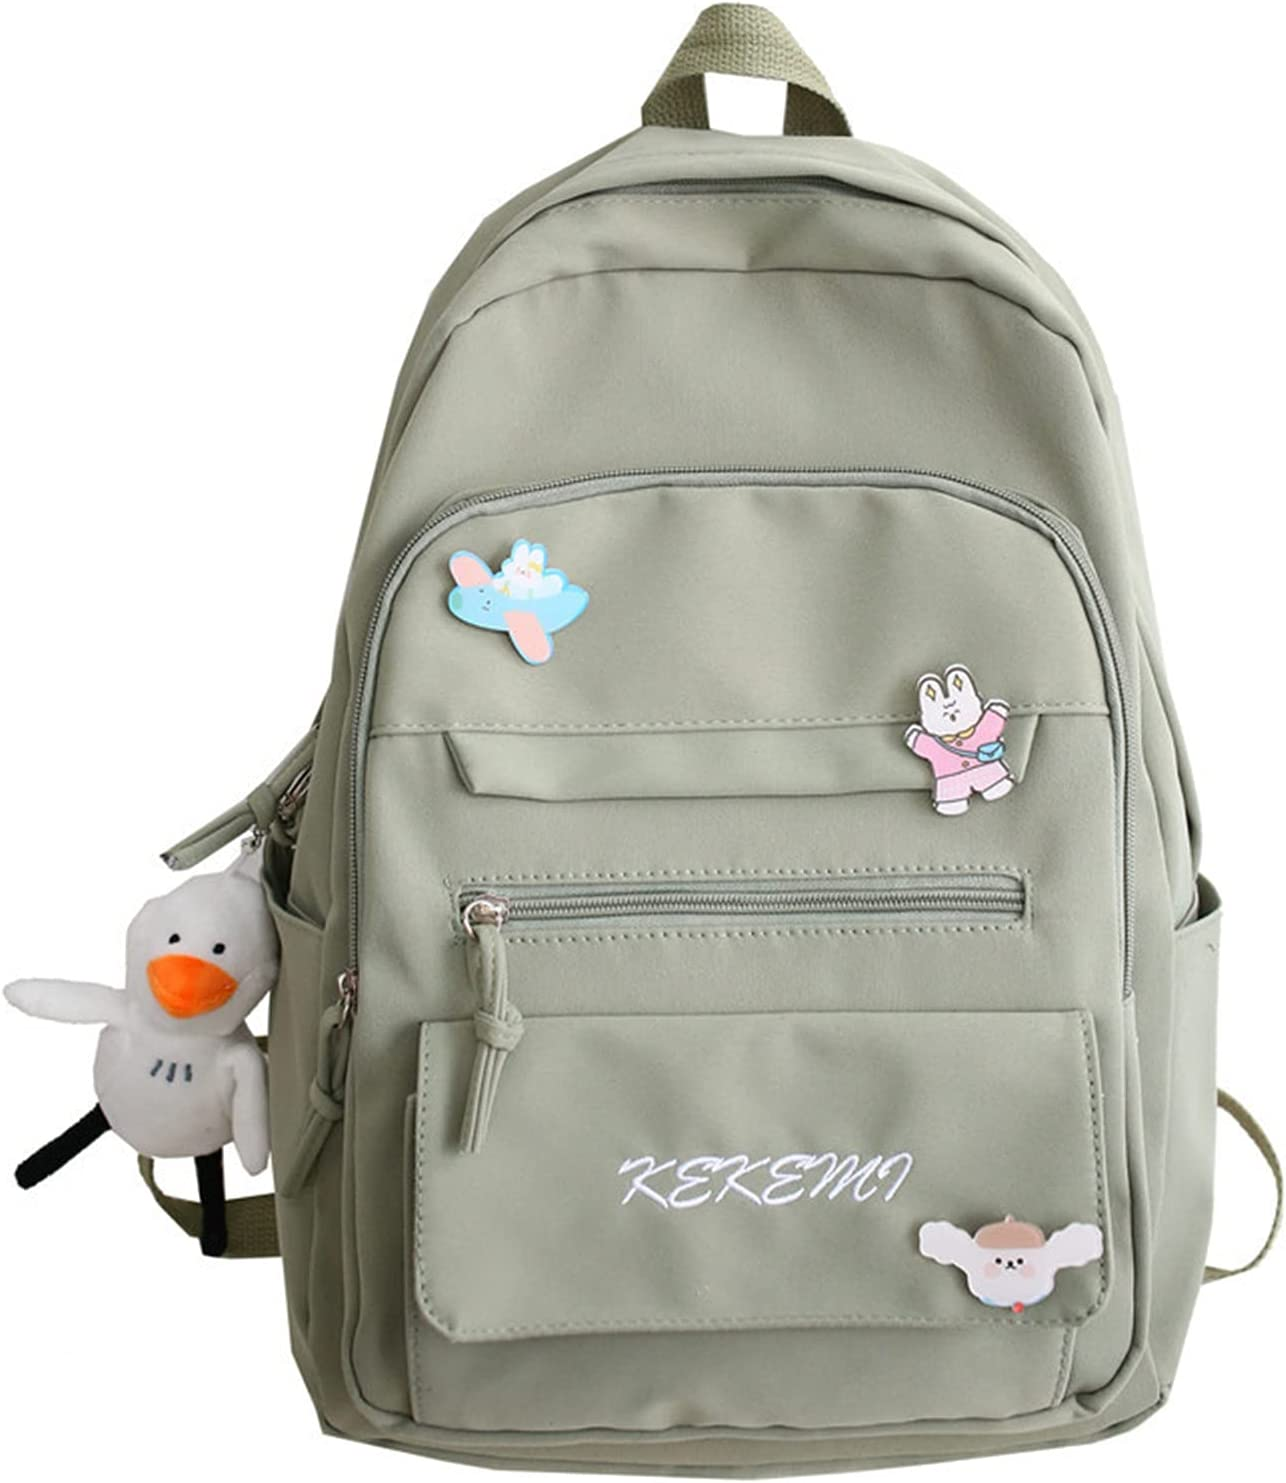 Kawai Backpack Rucksack with Kawaii Denver Mall Large discharge sale Student Aesthetic Cute Pin B